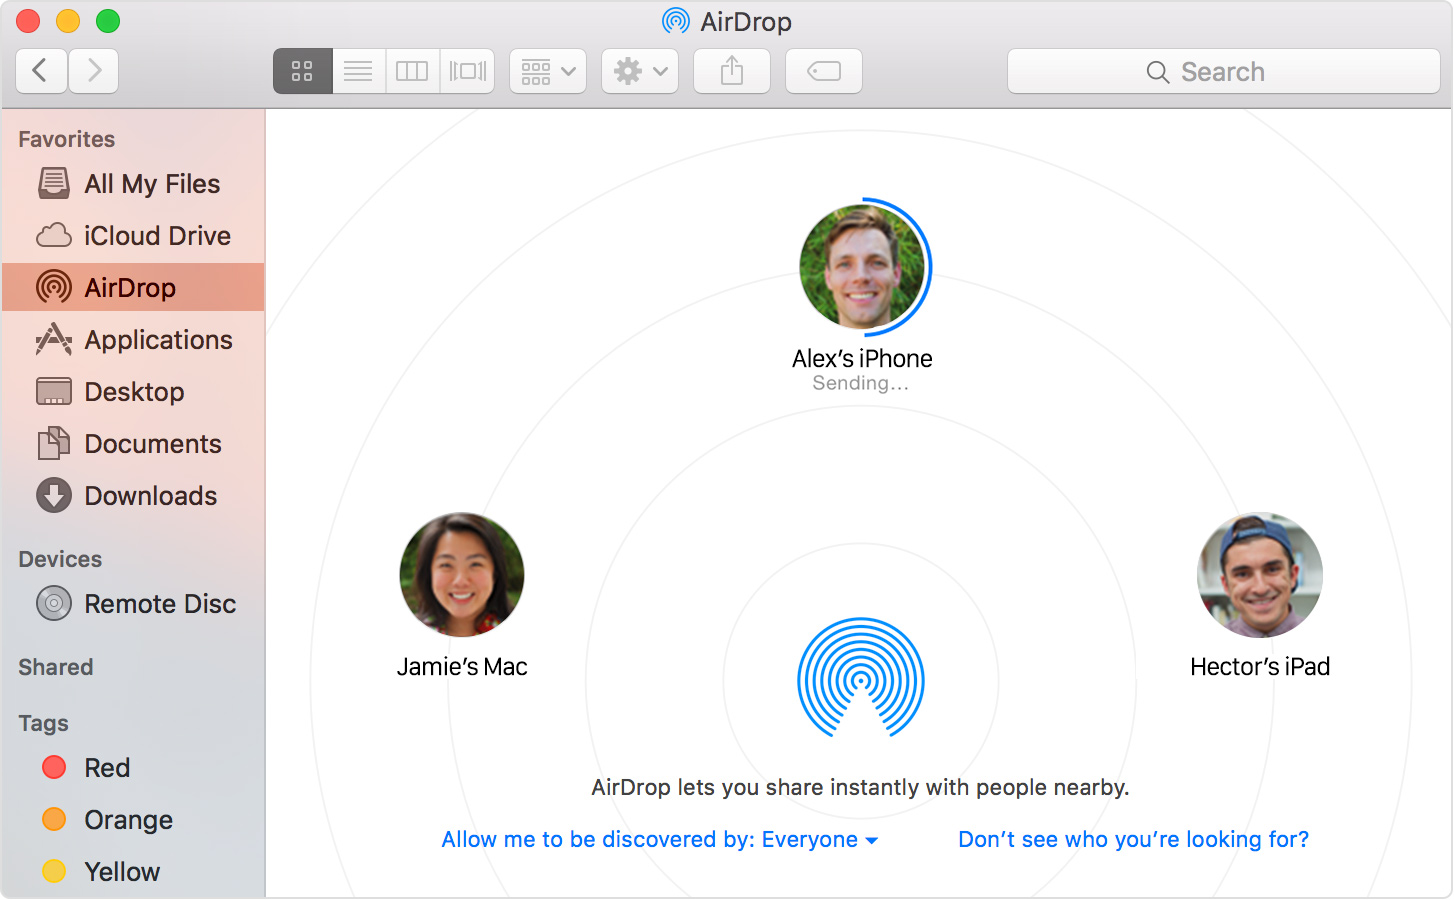 How To Easily Transfer Files Between Your Mac, iPhone, and iPad With AirDrop